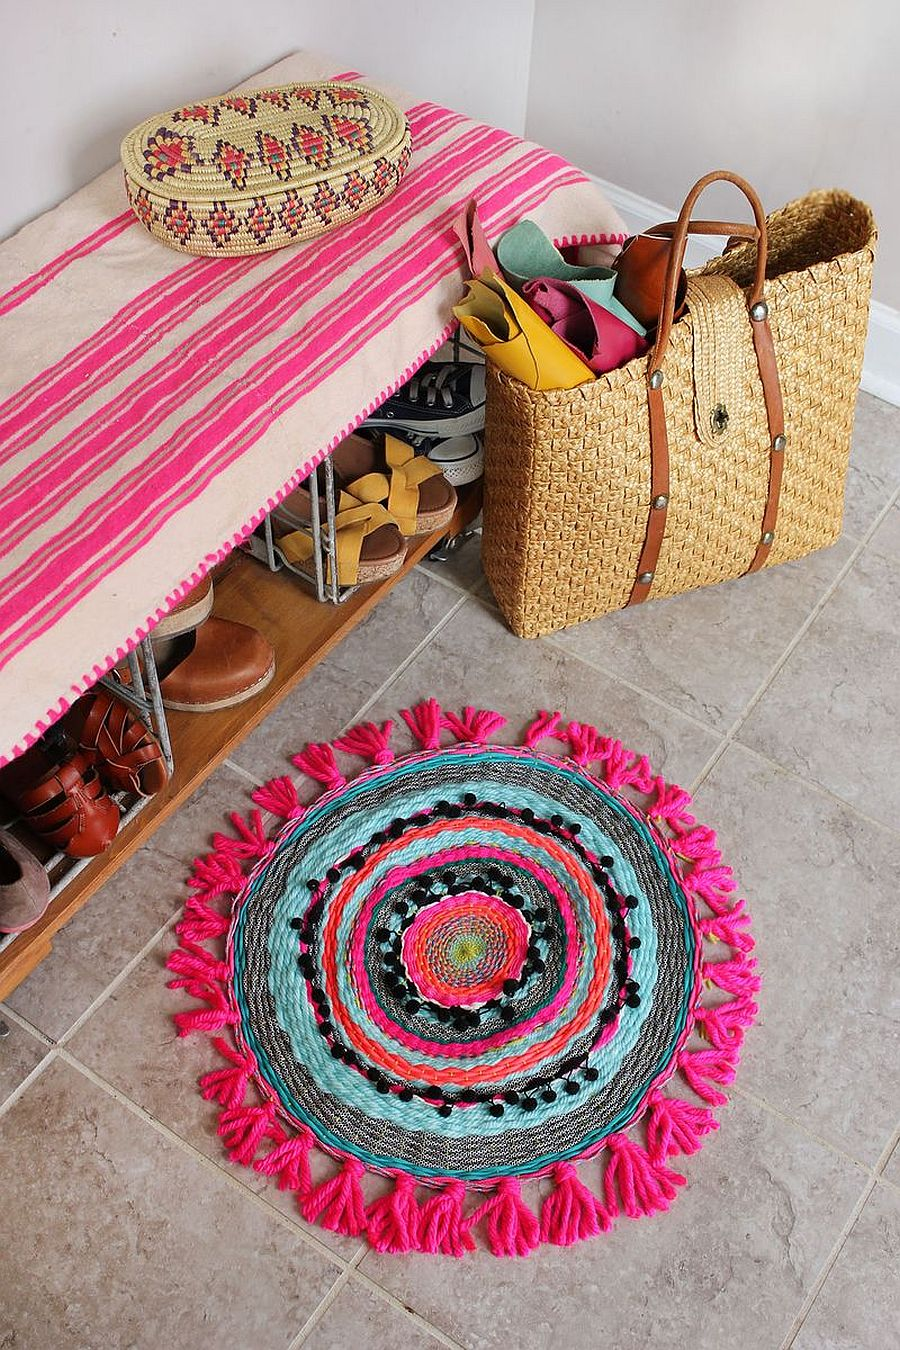 Homemade woven circle mat with pink panache